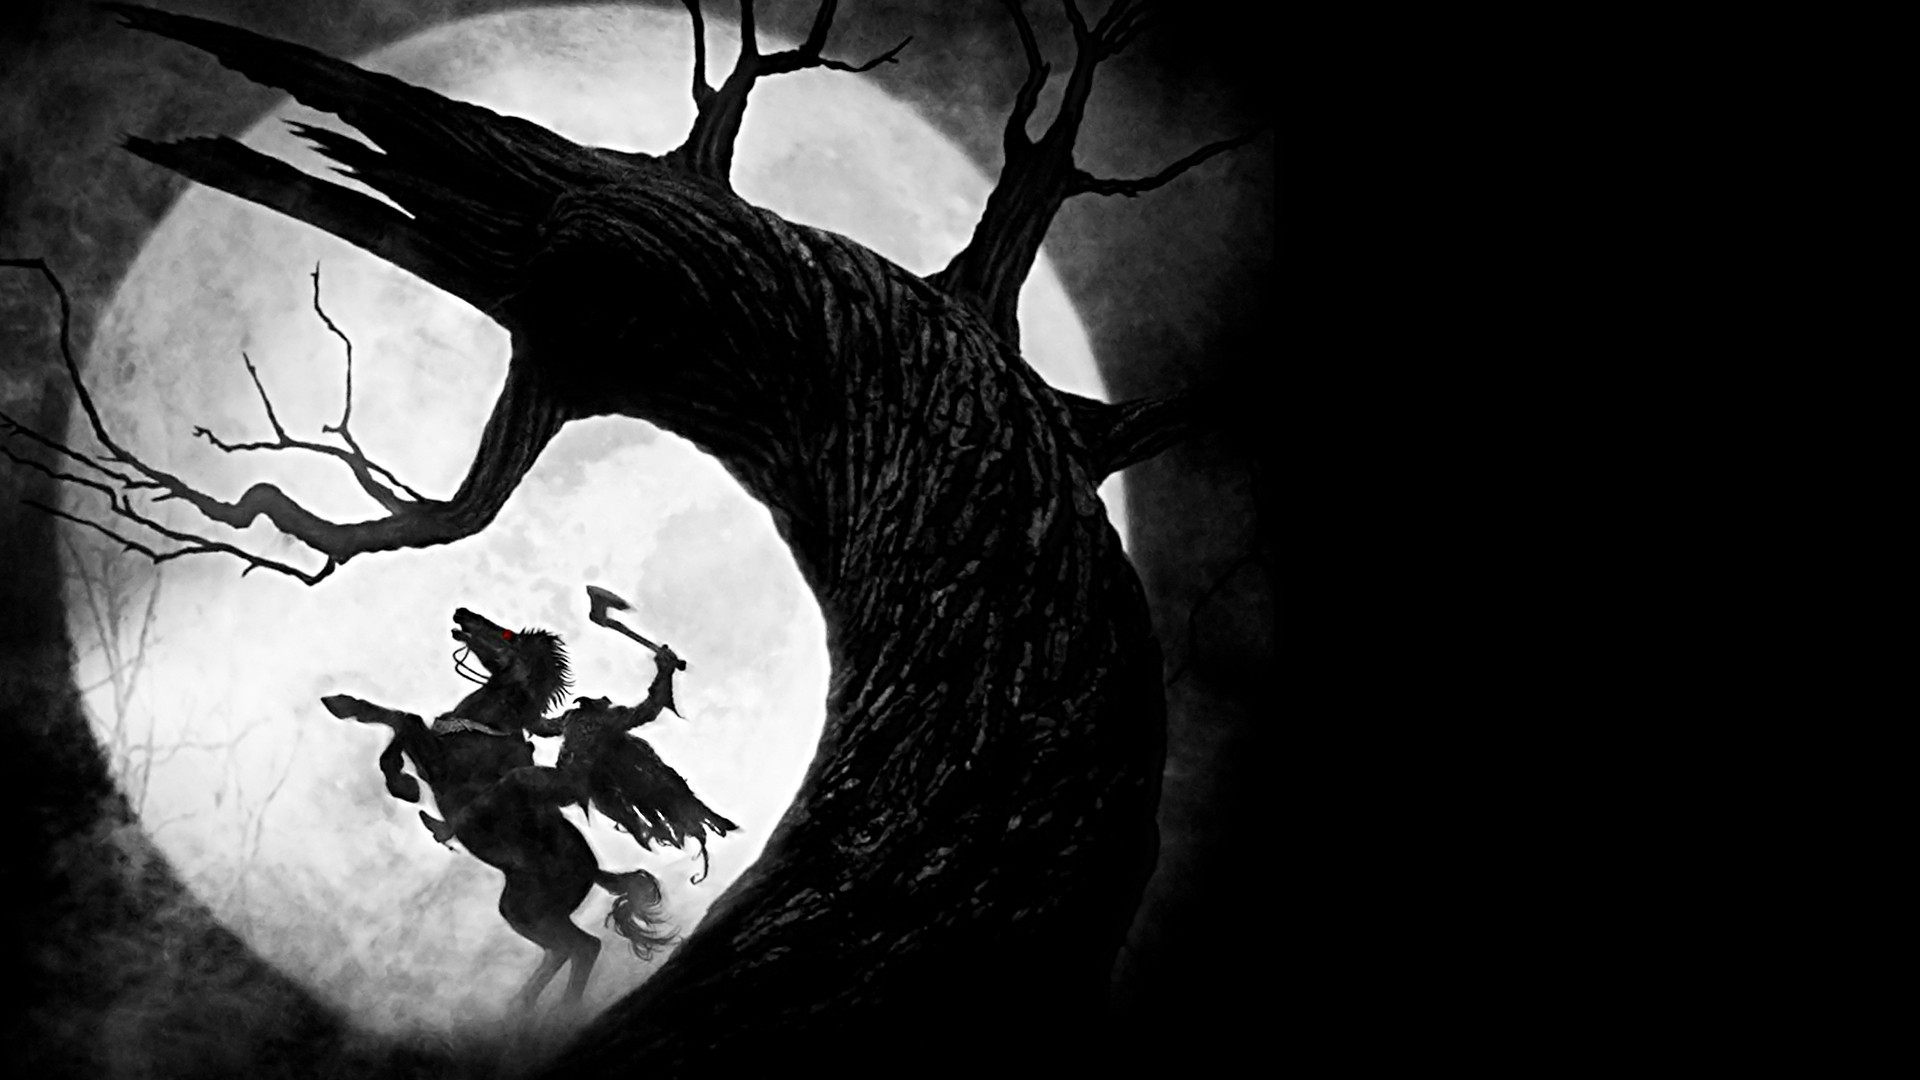 1920x1080 Wallpaper Sleepy hollow, Headless horseman, Moon, Tree